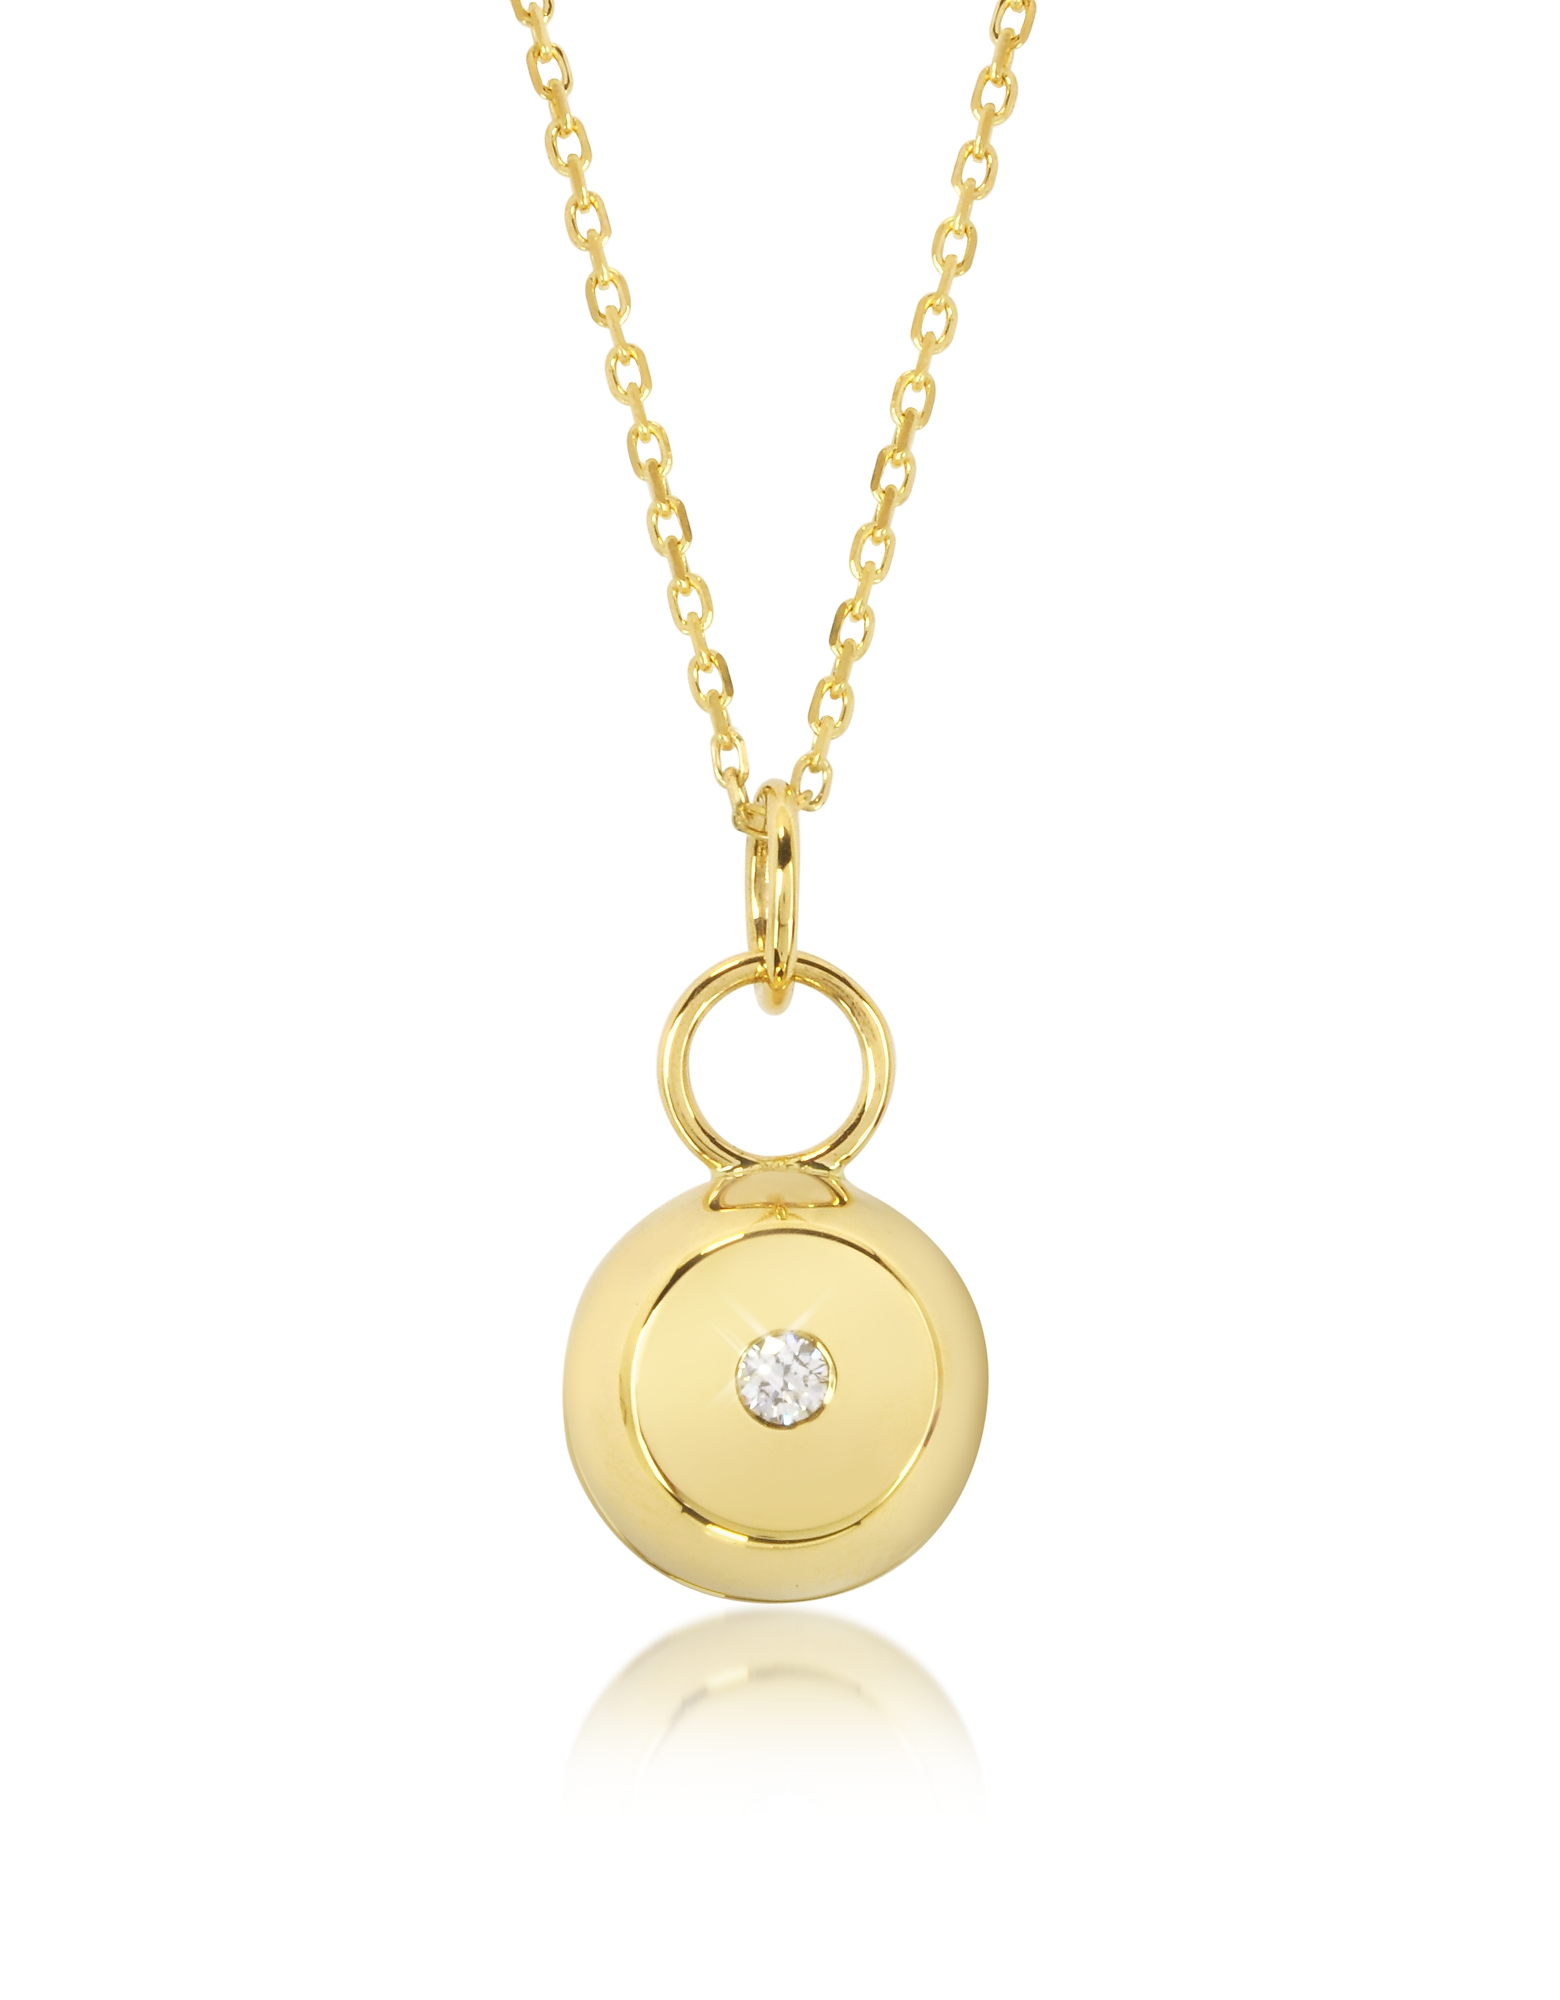 Aurelie Bidermann Necklaces, Telemaque 18K Yellow Gold and Diamond Bell Charm